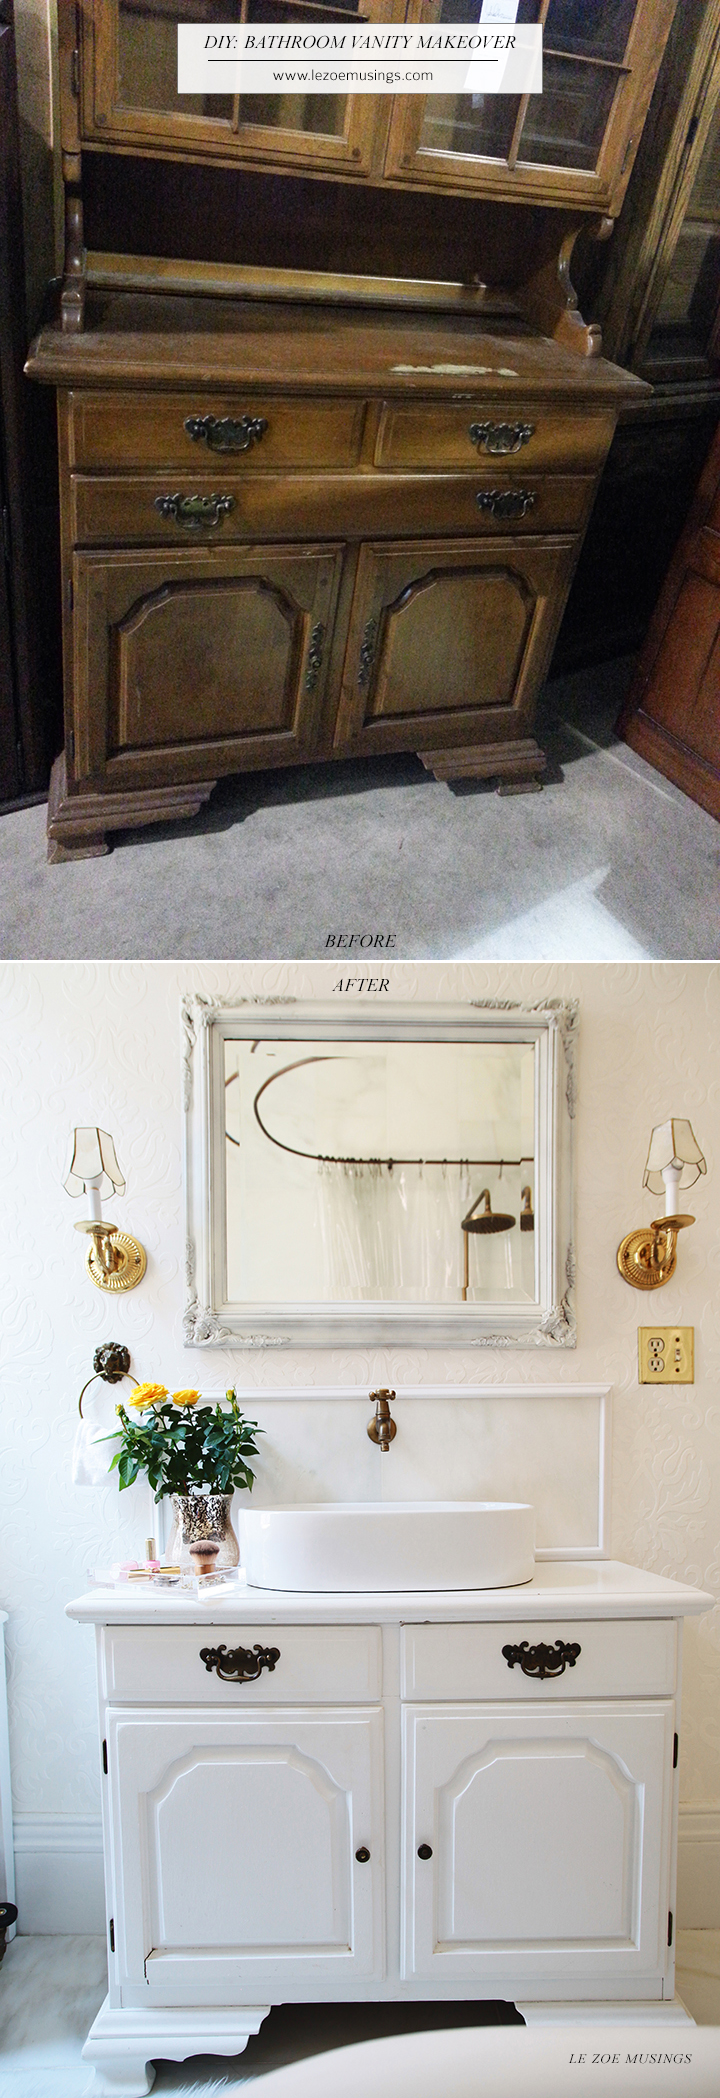 DIY Bathroom Vanity Makeover (using A Thrifted Hutch) By Le Zoe Musings